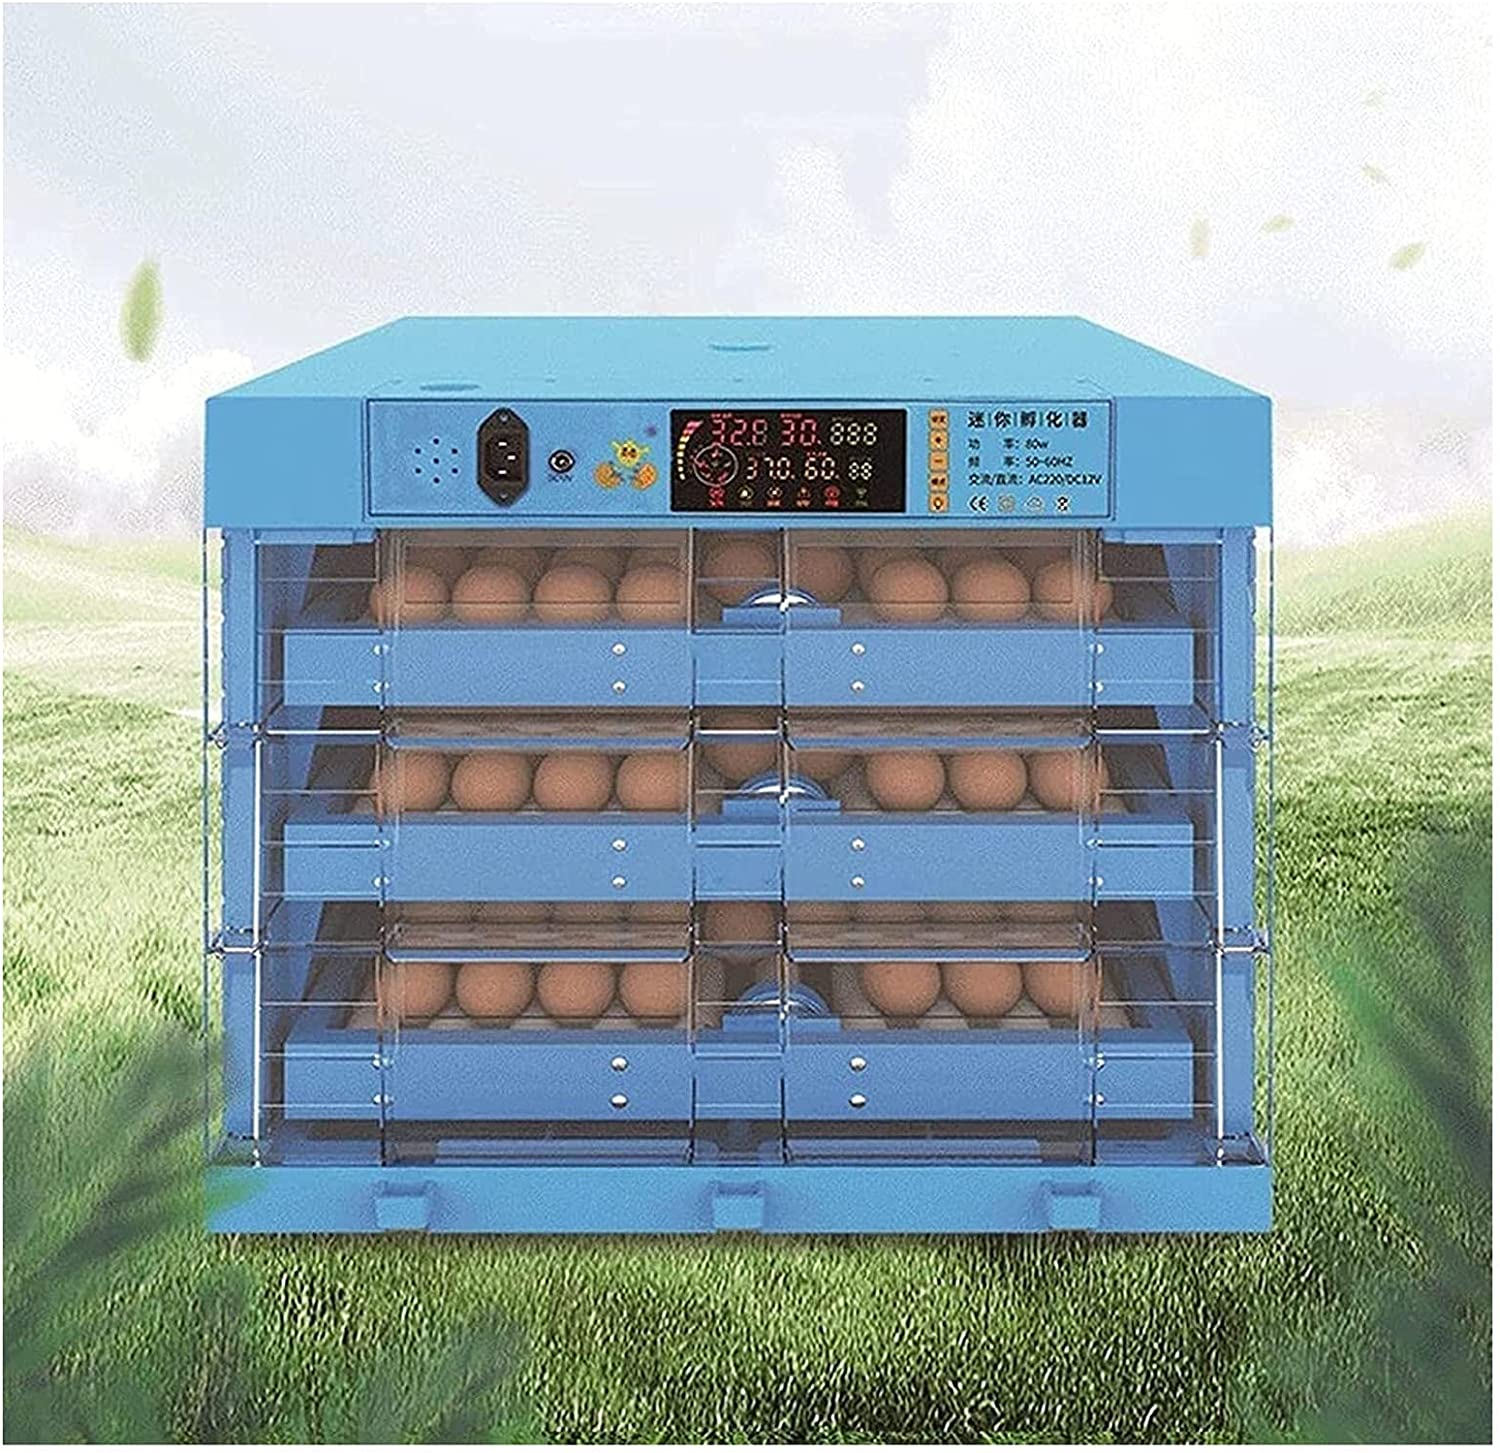 WENZHE Eggs Incubator Fort Worth Mall Very popular with Automatic and Turning Humidity Co Egg